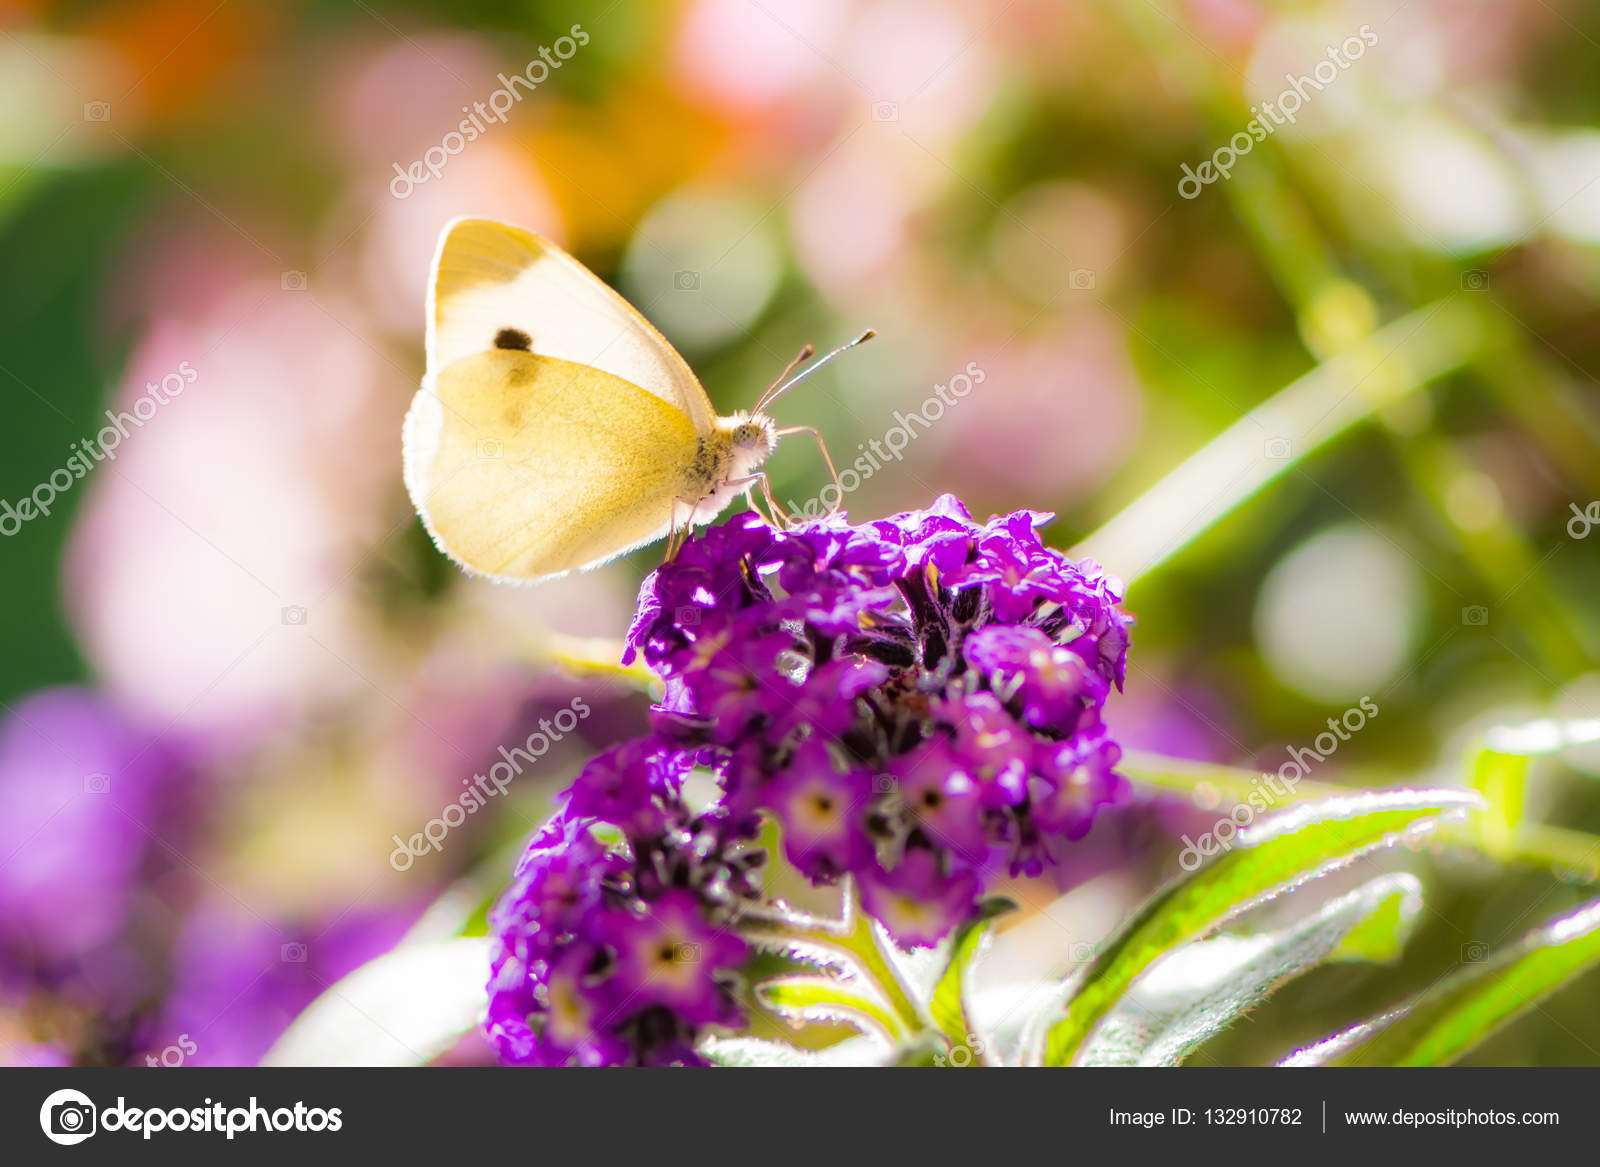 White Cabbage Butterfyl On A Flower Blossom Stock Photo